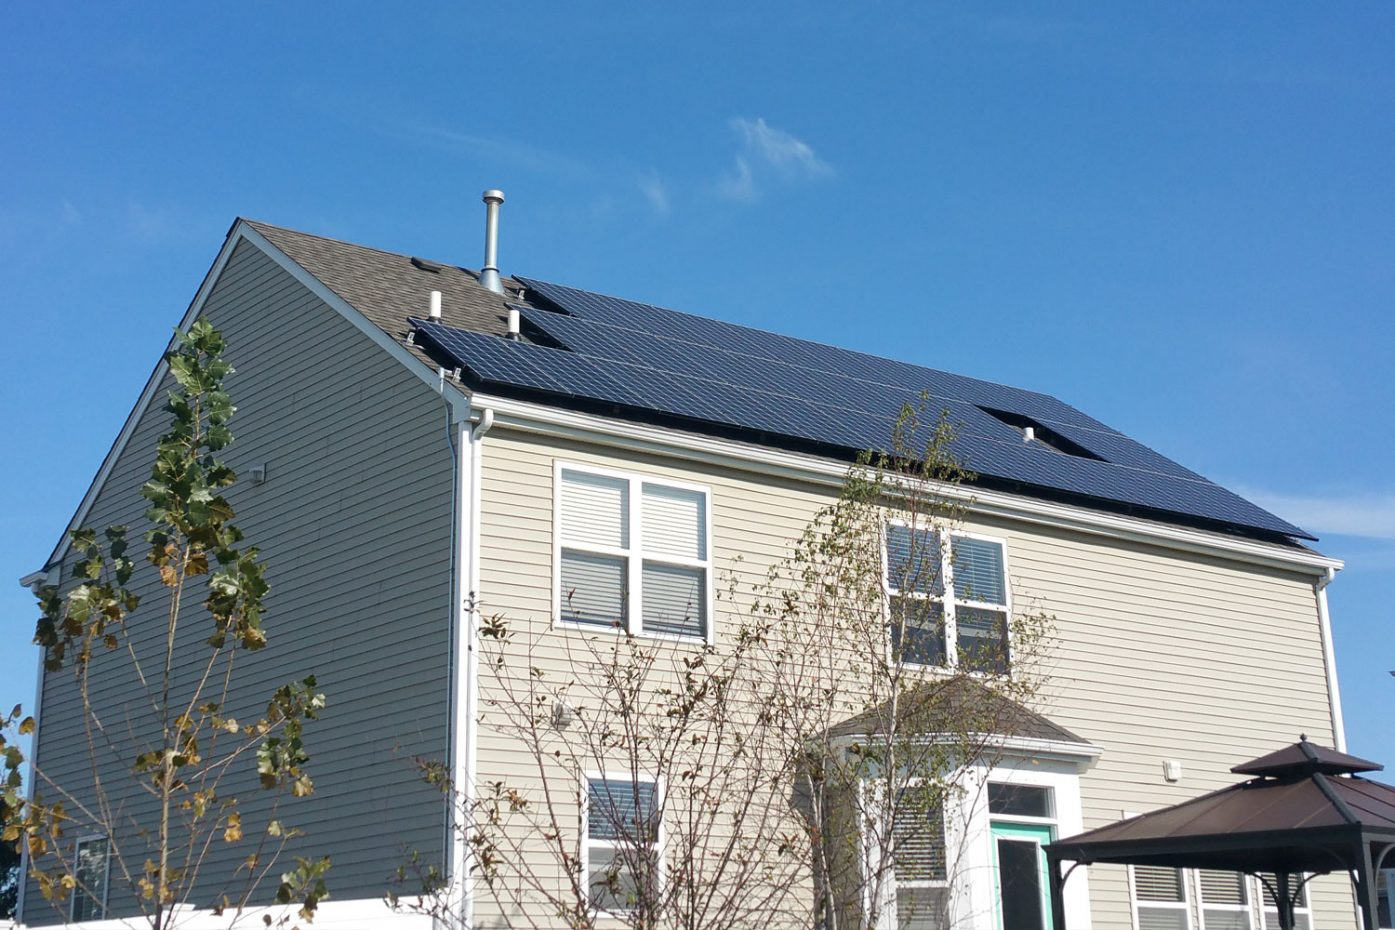 Residential Solar Install in Elgin, IL - Rethink Electric